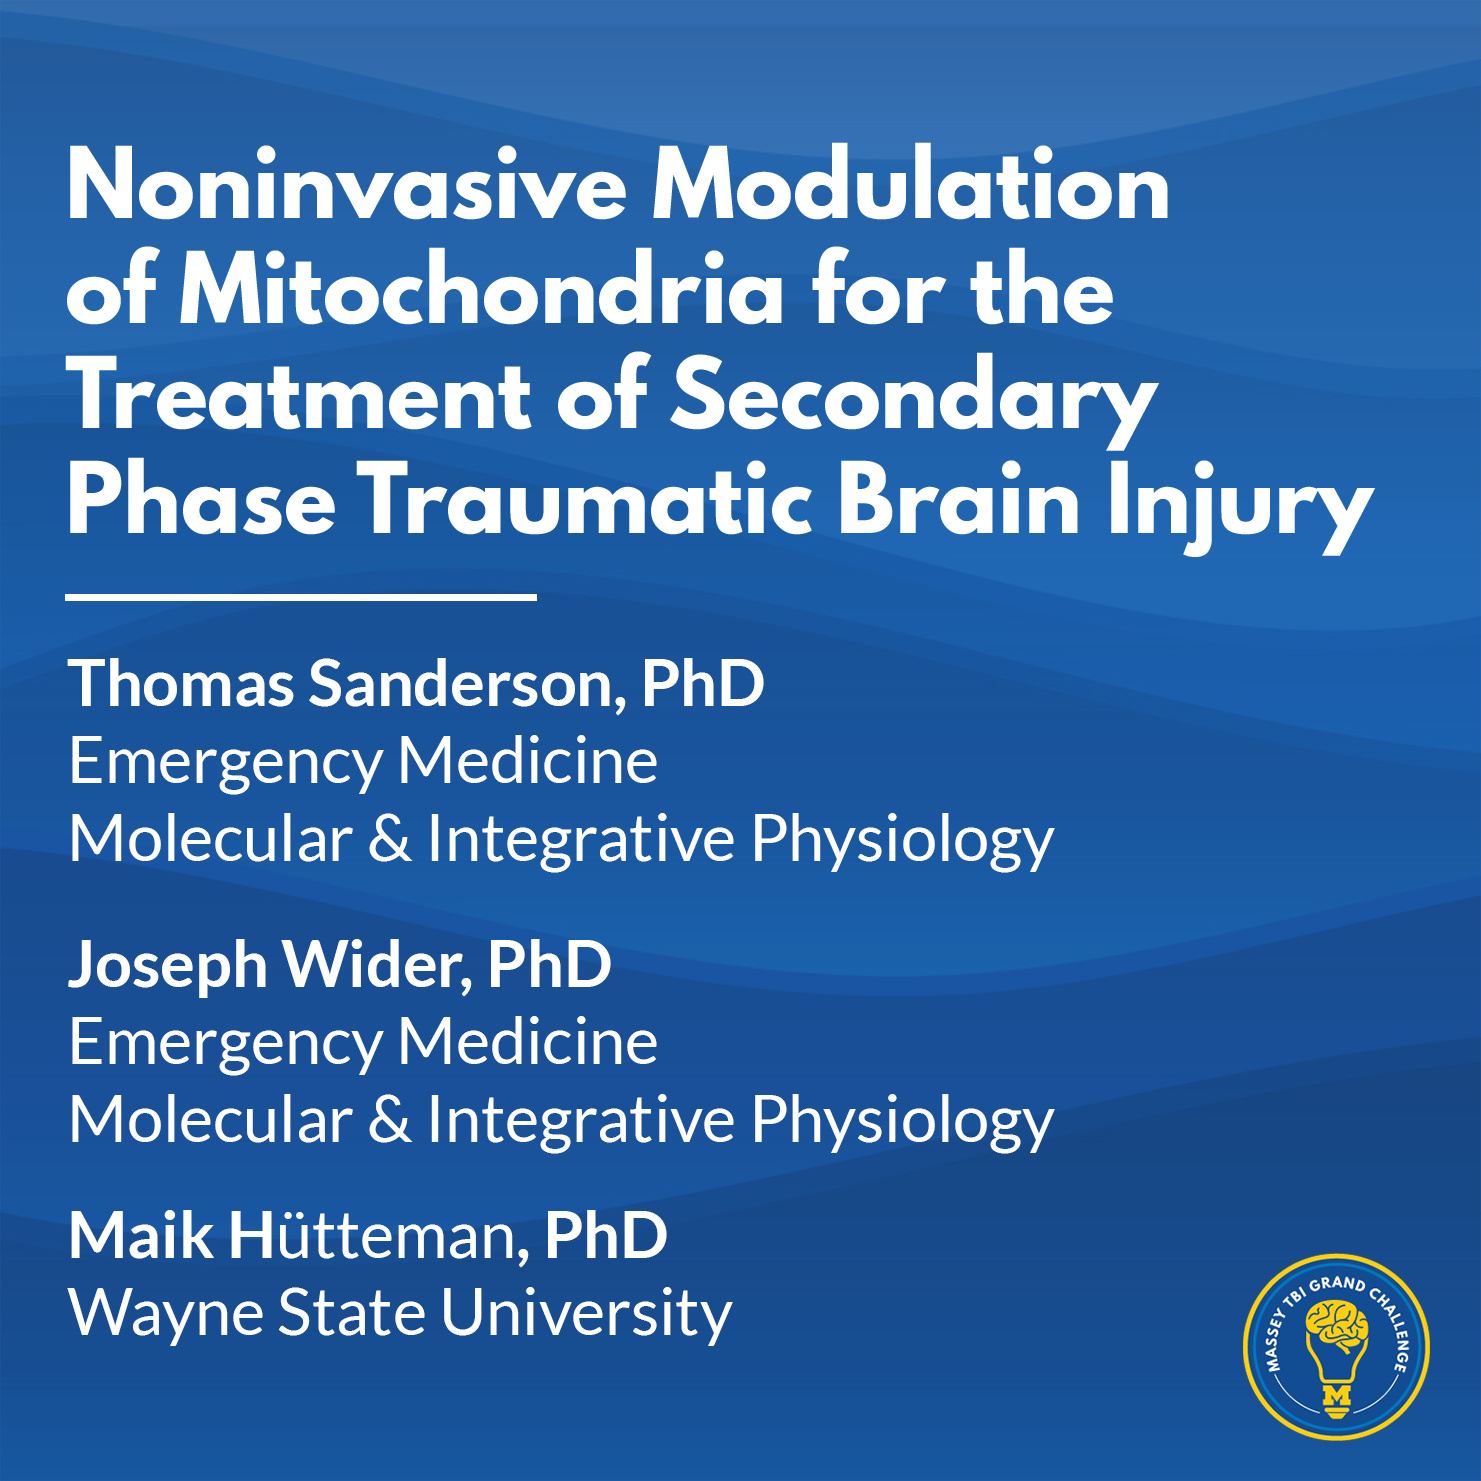 Research Thumbnail Template - Noninvasive Modulation of Mitochondria for the Treatment of Secondary Phase Traumatic Brain Injury - Sanderson.png